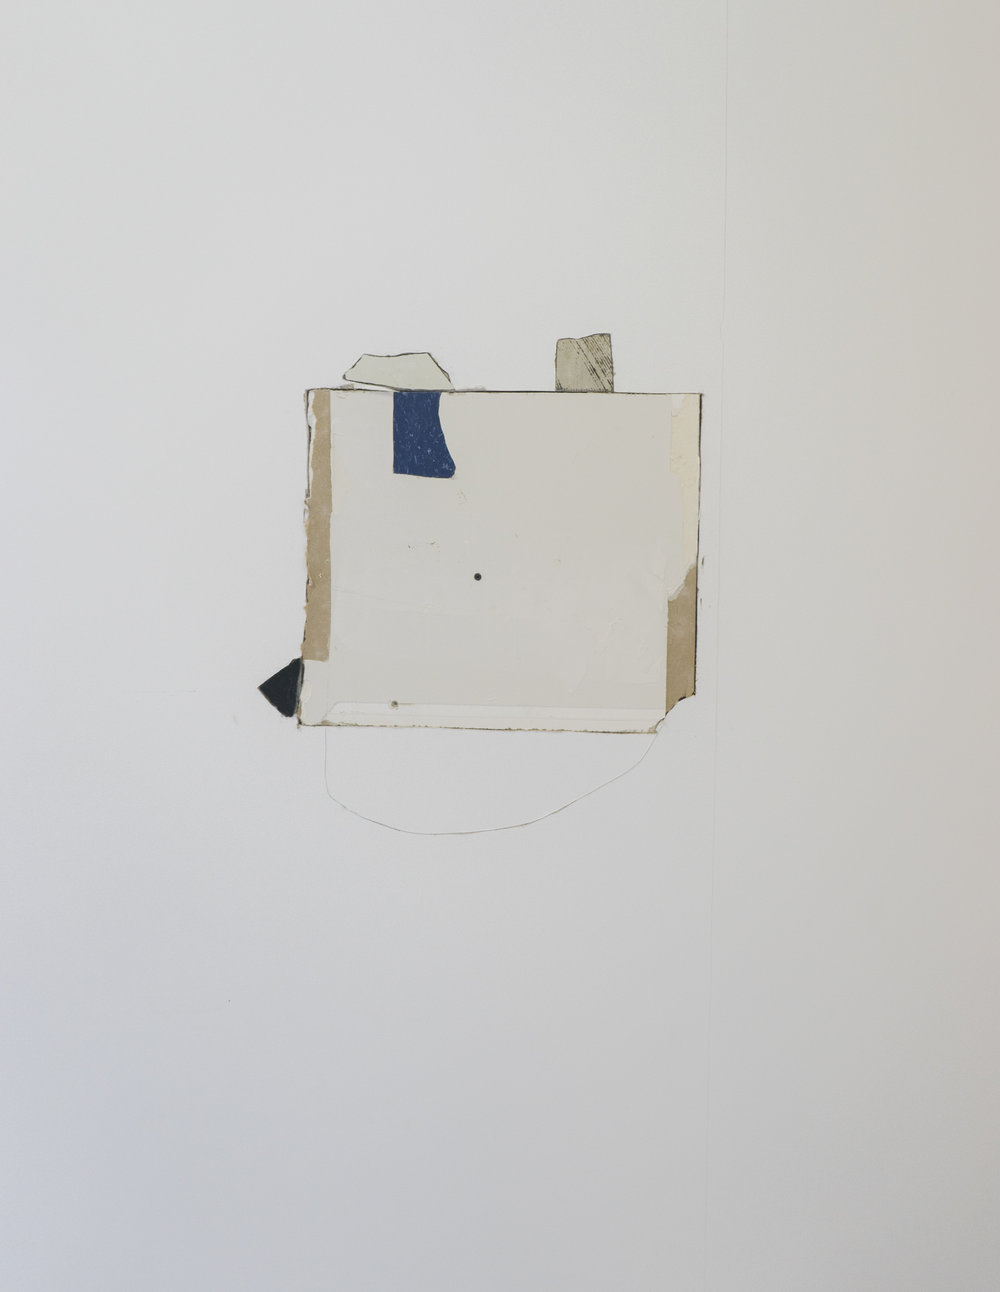 Will Tucker   fermented firmament   2015-2017  gypsum board and VCT fragments